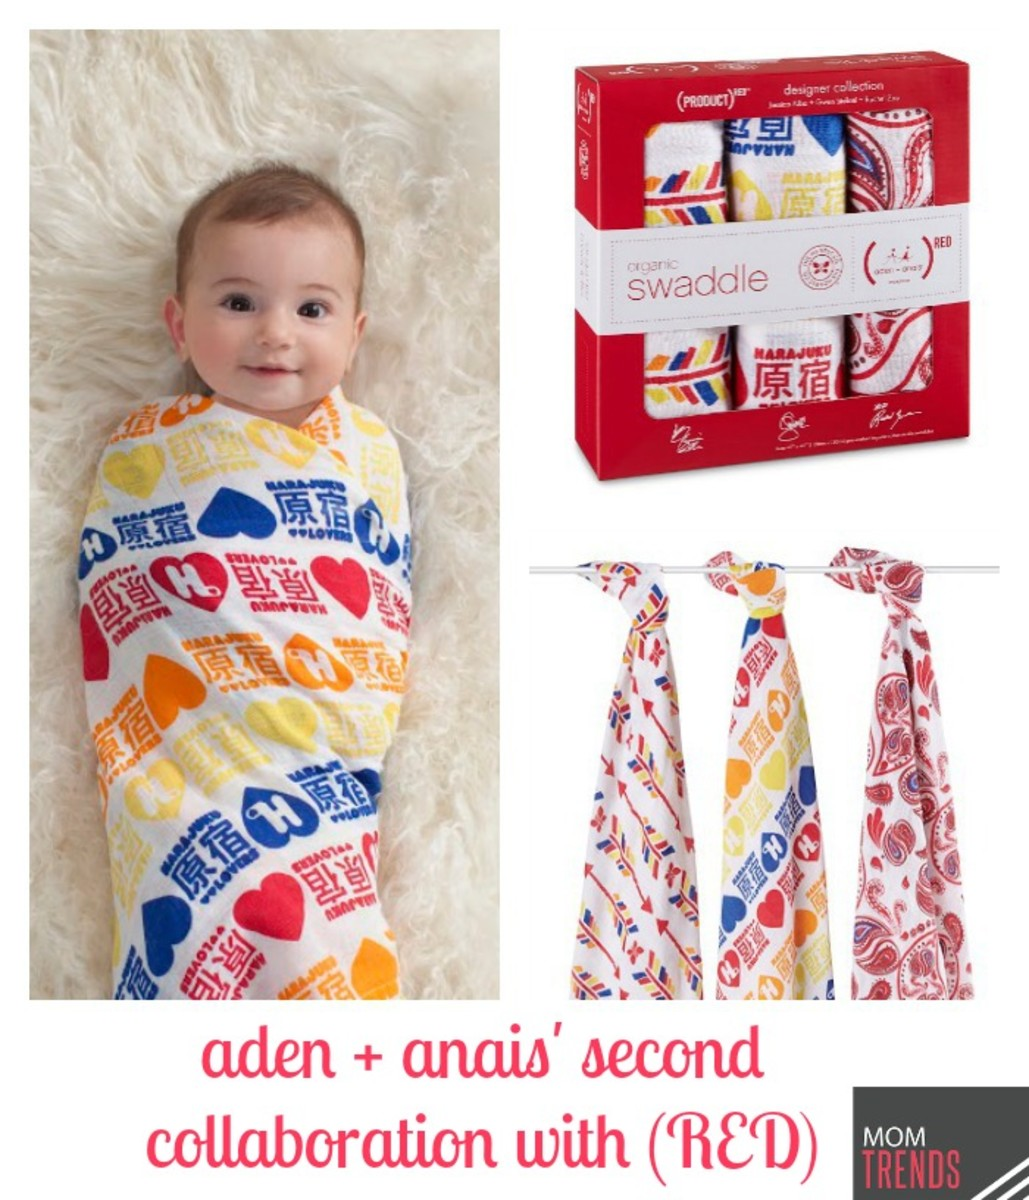 aden + anais' second collaboration with (RED